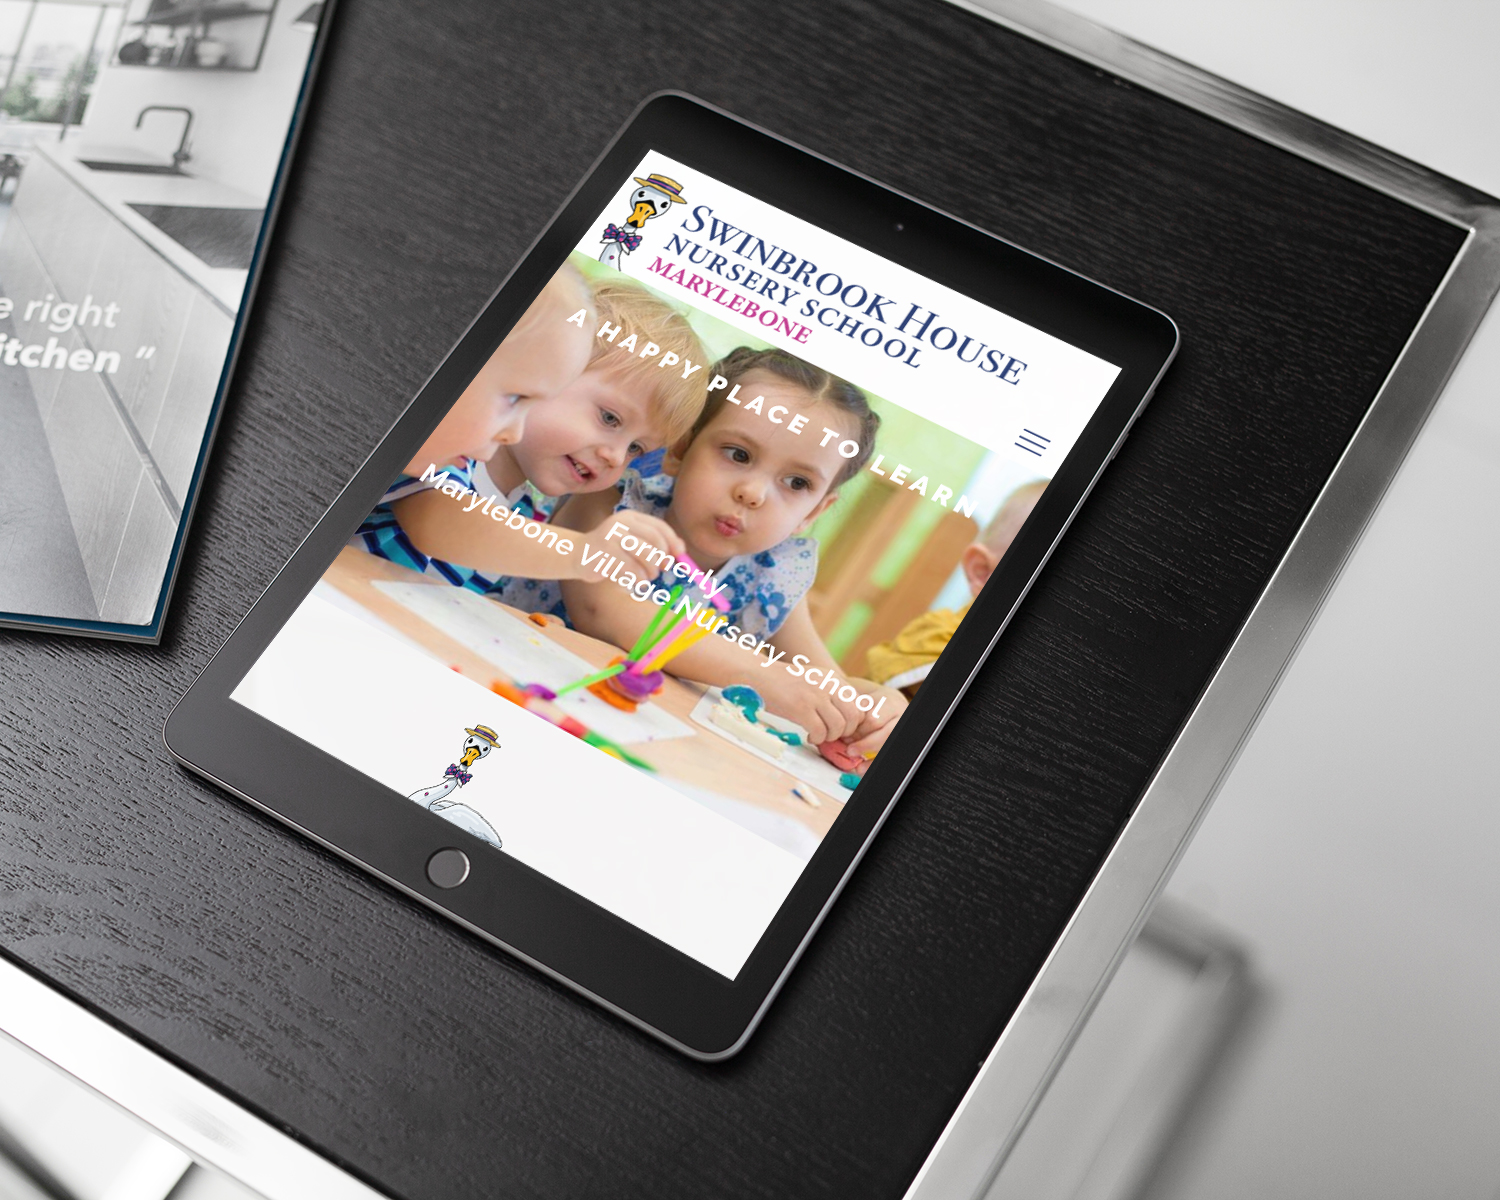 Nursery-School-Website-Design-for-Swinbrook-House-Nursery-School-by-Three-Girls-Media_ipad